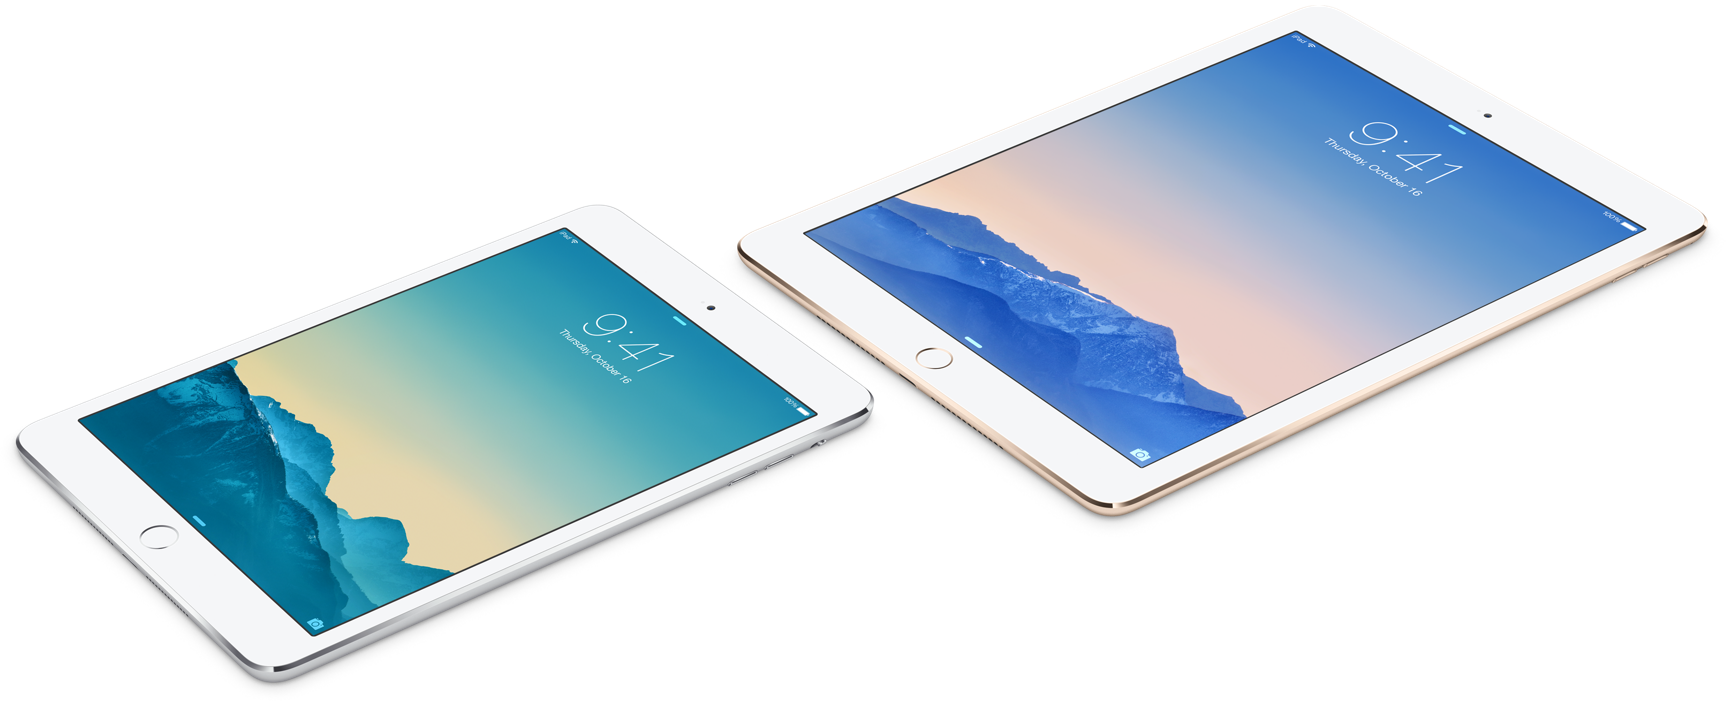 Could Apple release 3 new iPad models in 2015?